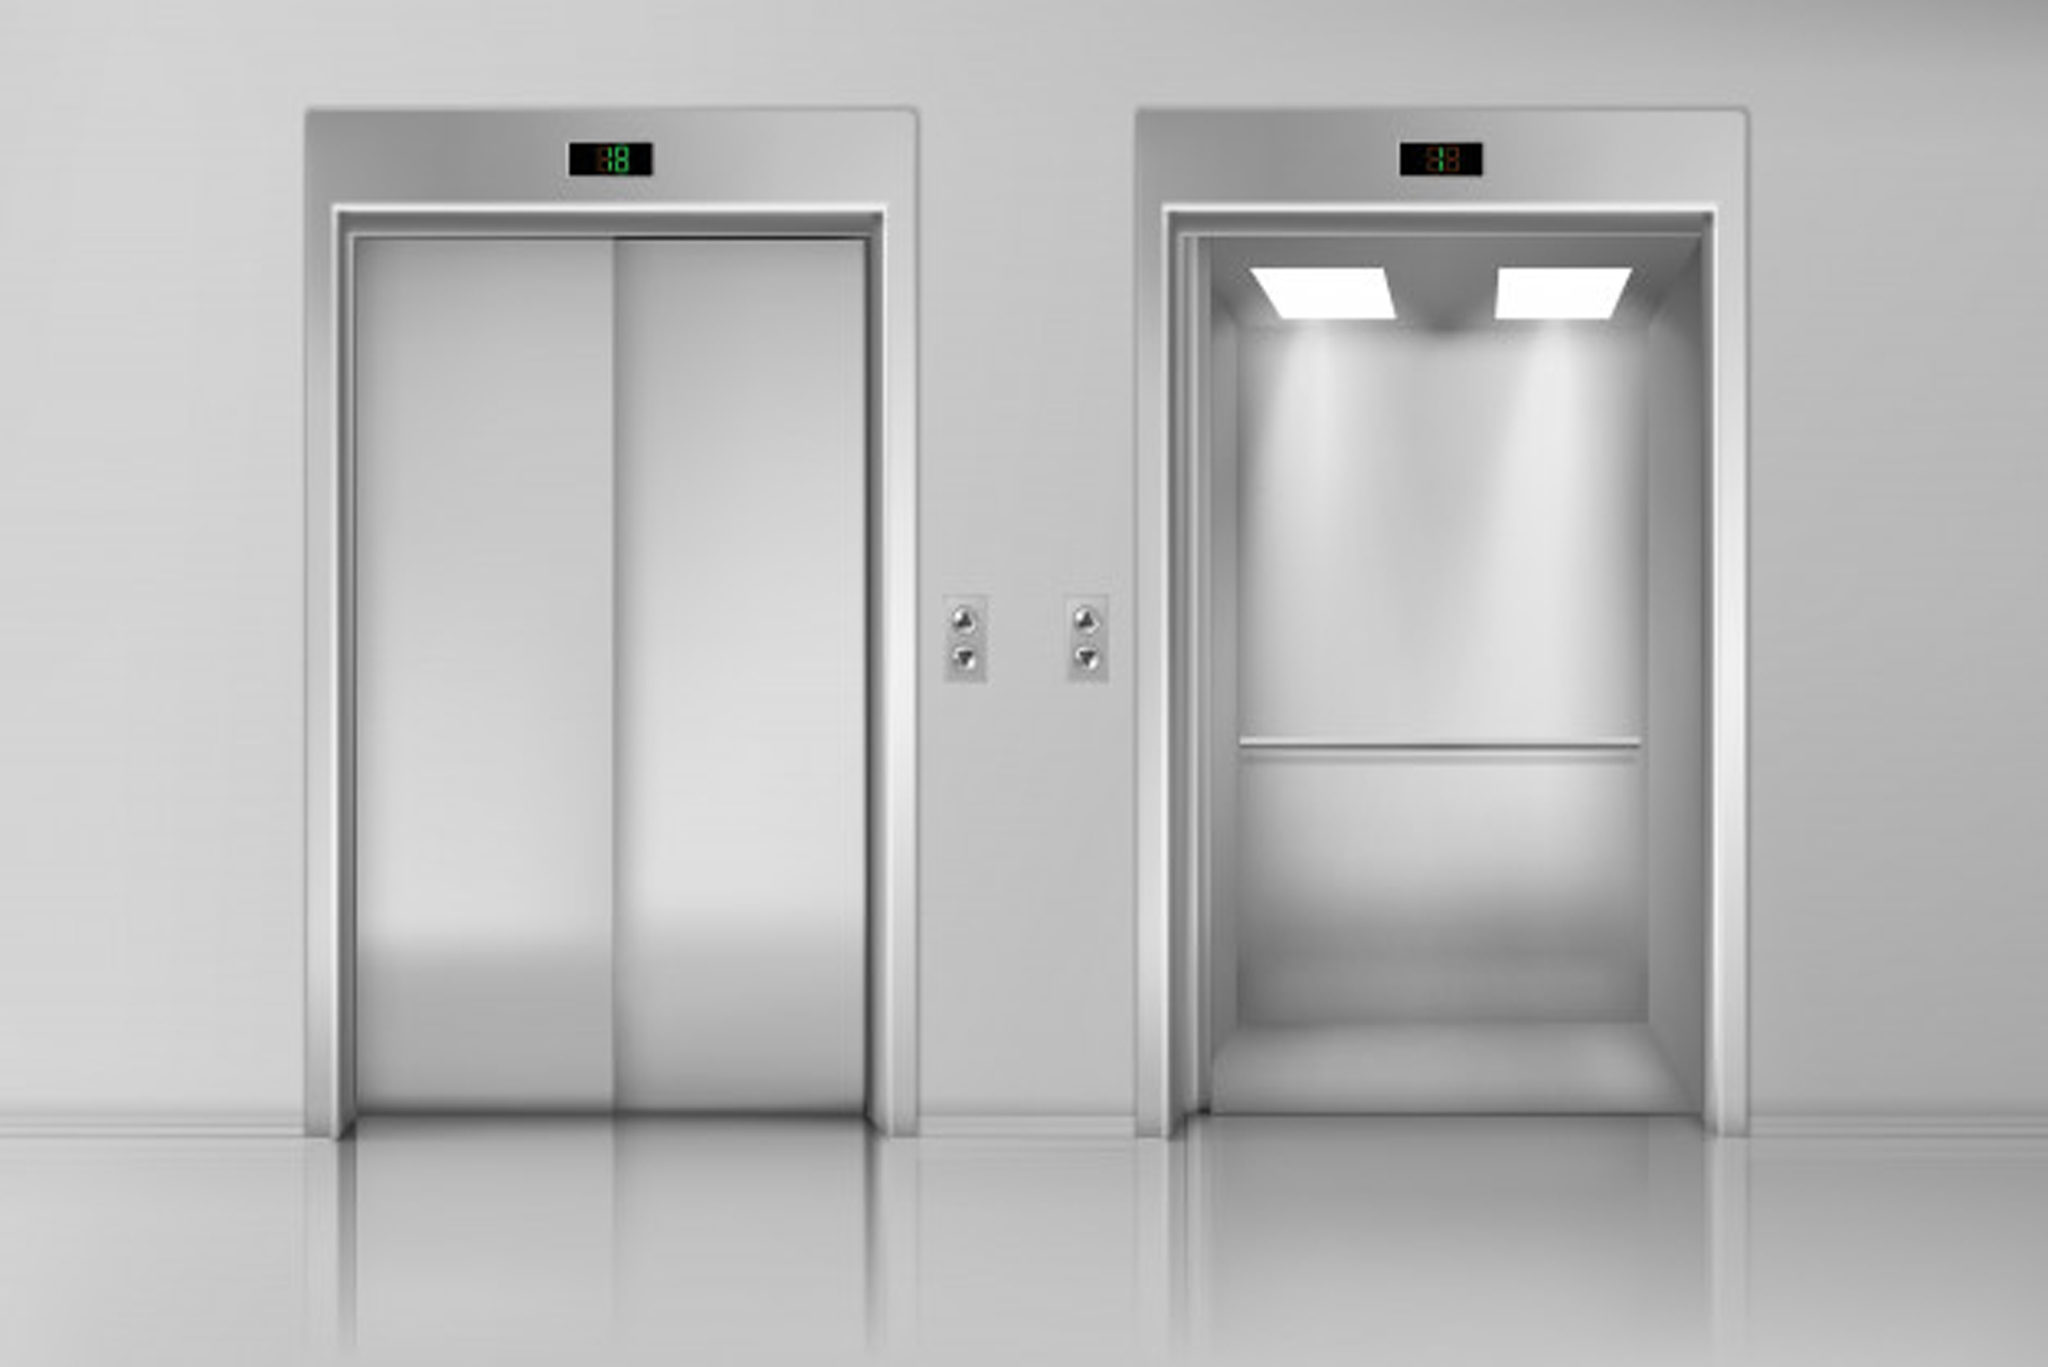 Smart Elevator Technologies for an Even Smarter Elevator Experience